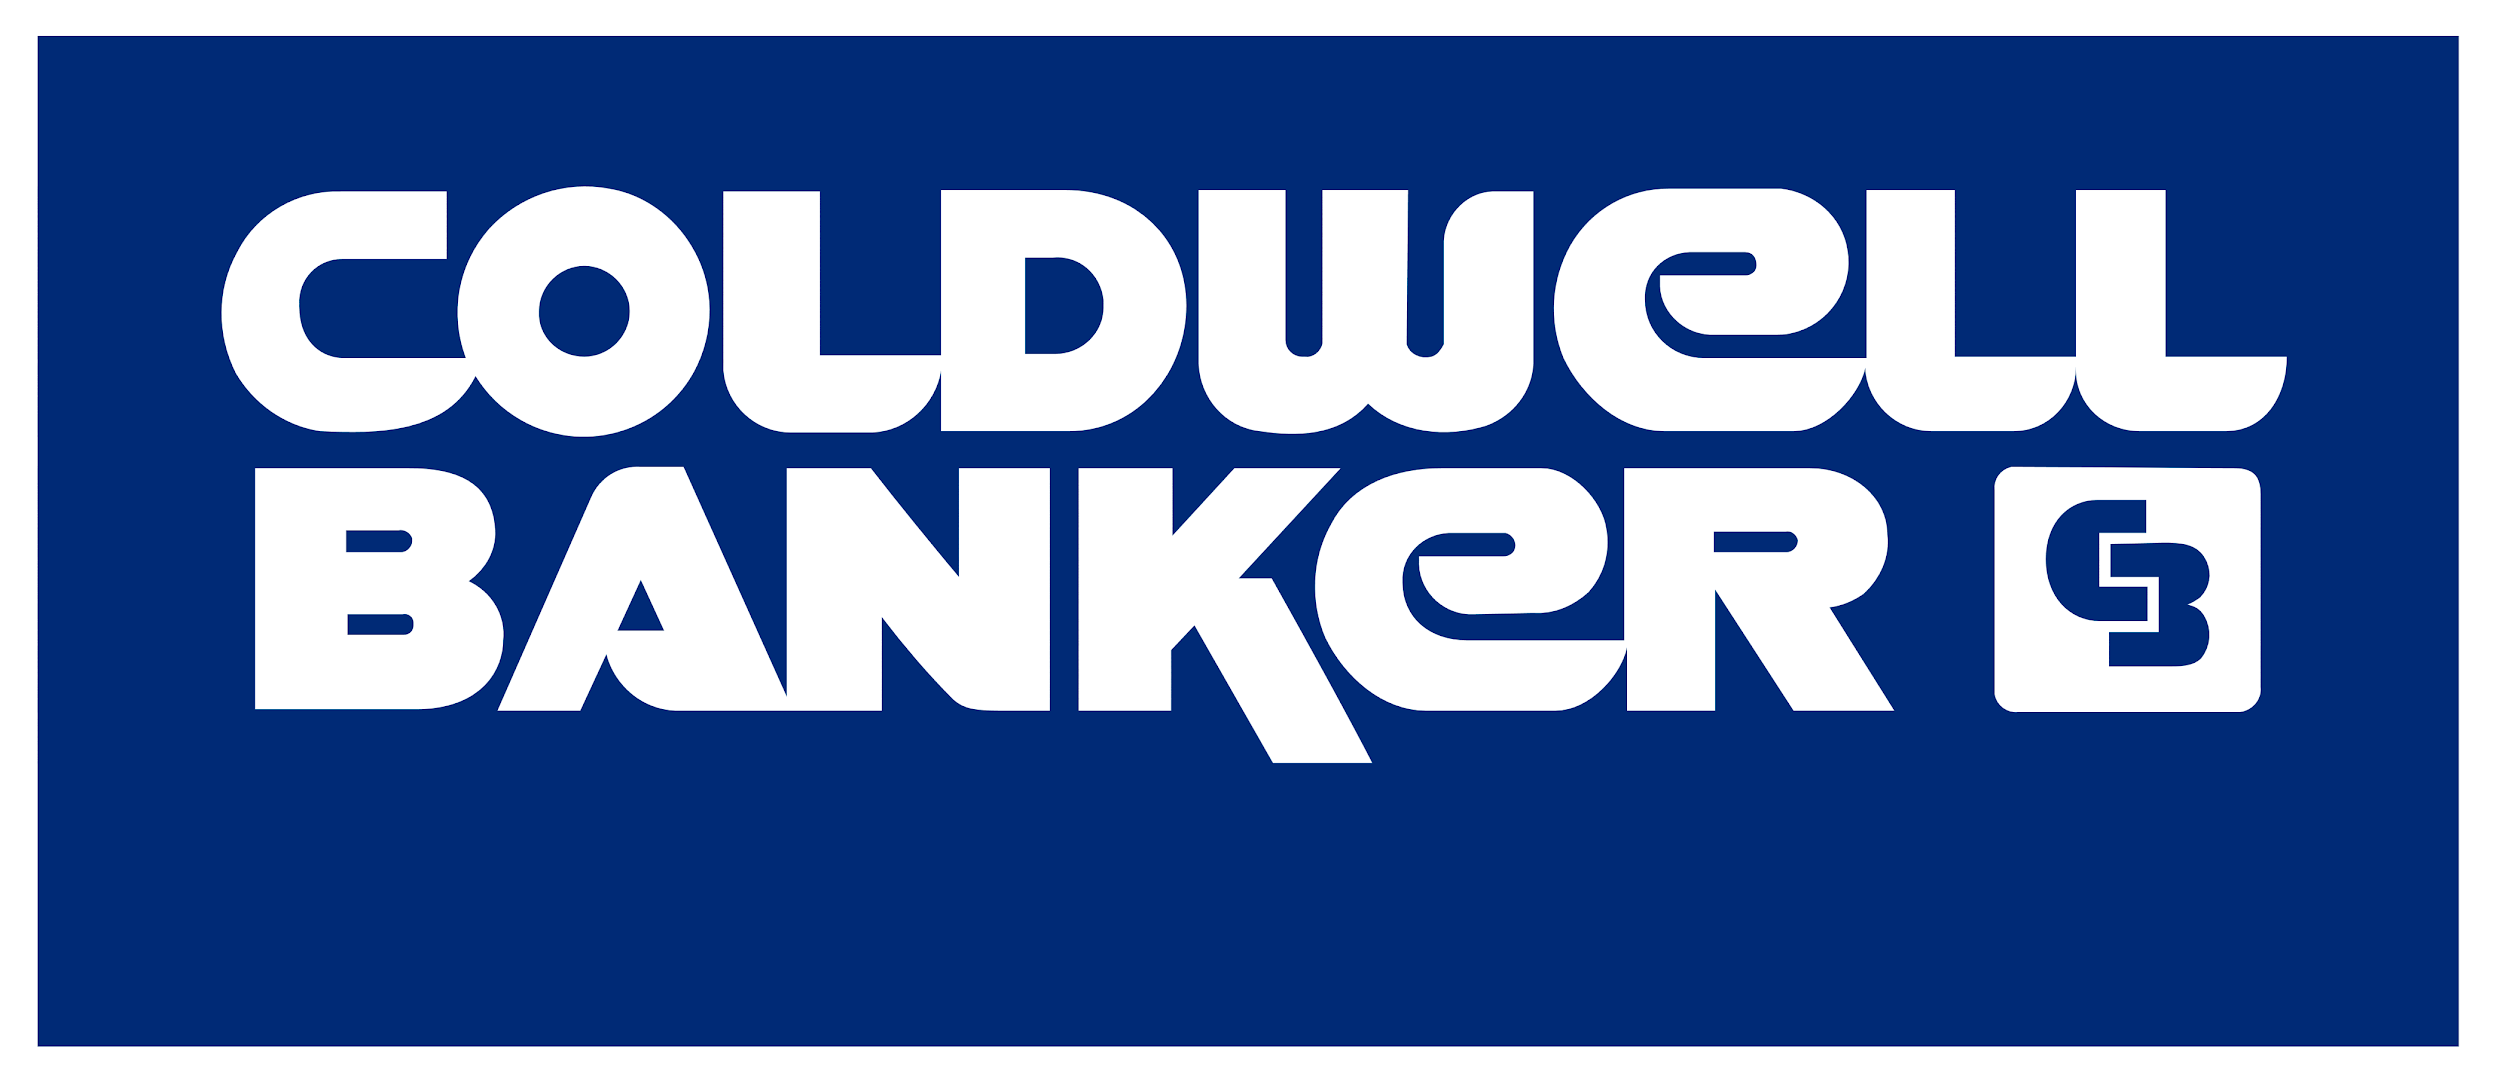 Coldwell Banker Realty - best real estate company to work for